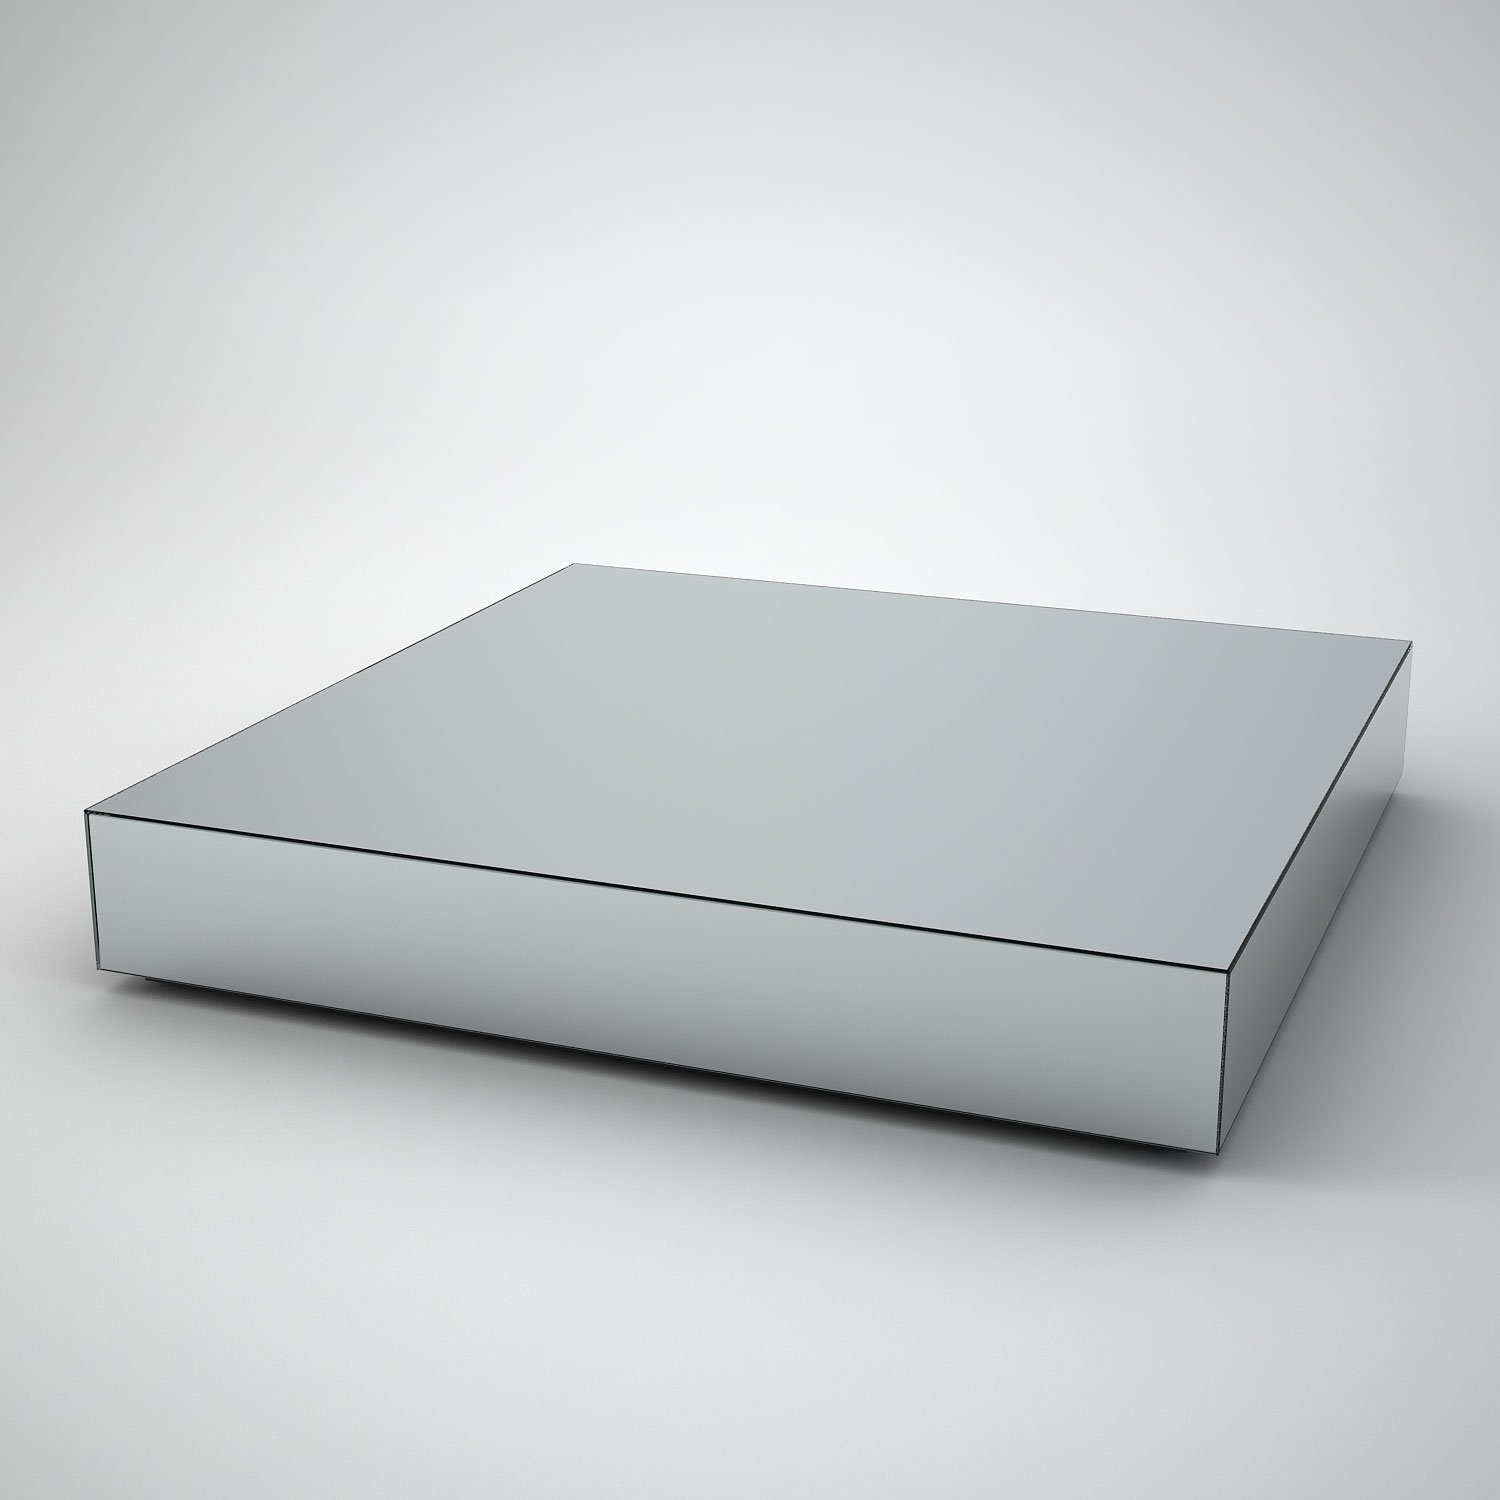 Mirrored Coffee Table by MirrorBox